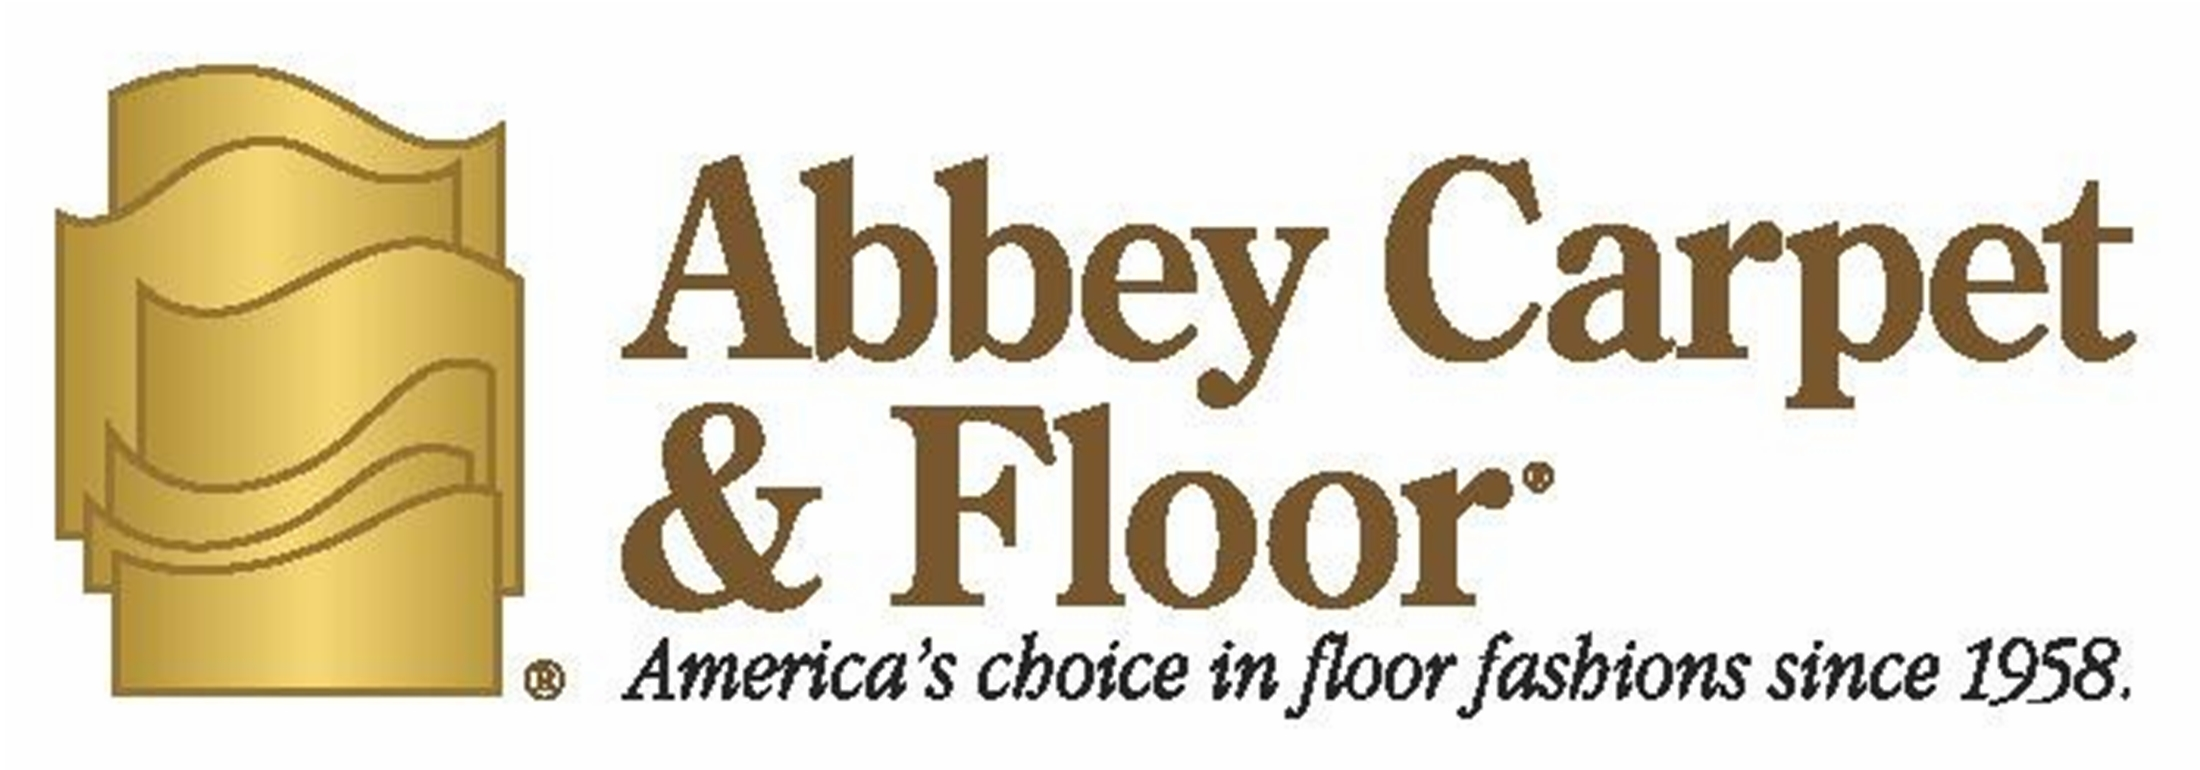 Abbey Carpet And Floor Credit Card Payment Login